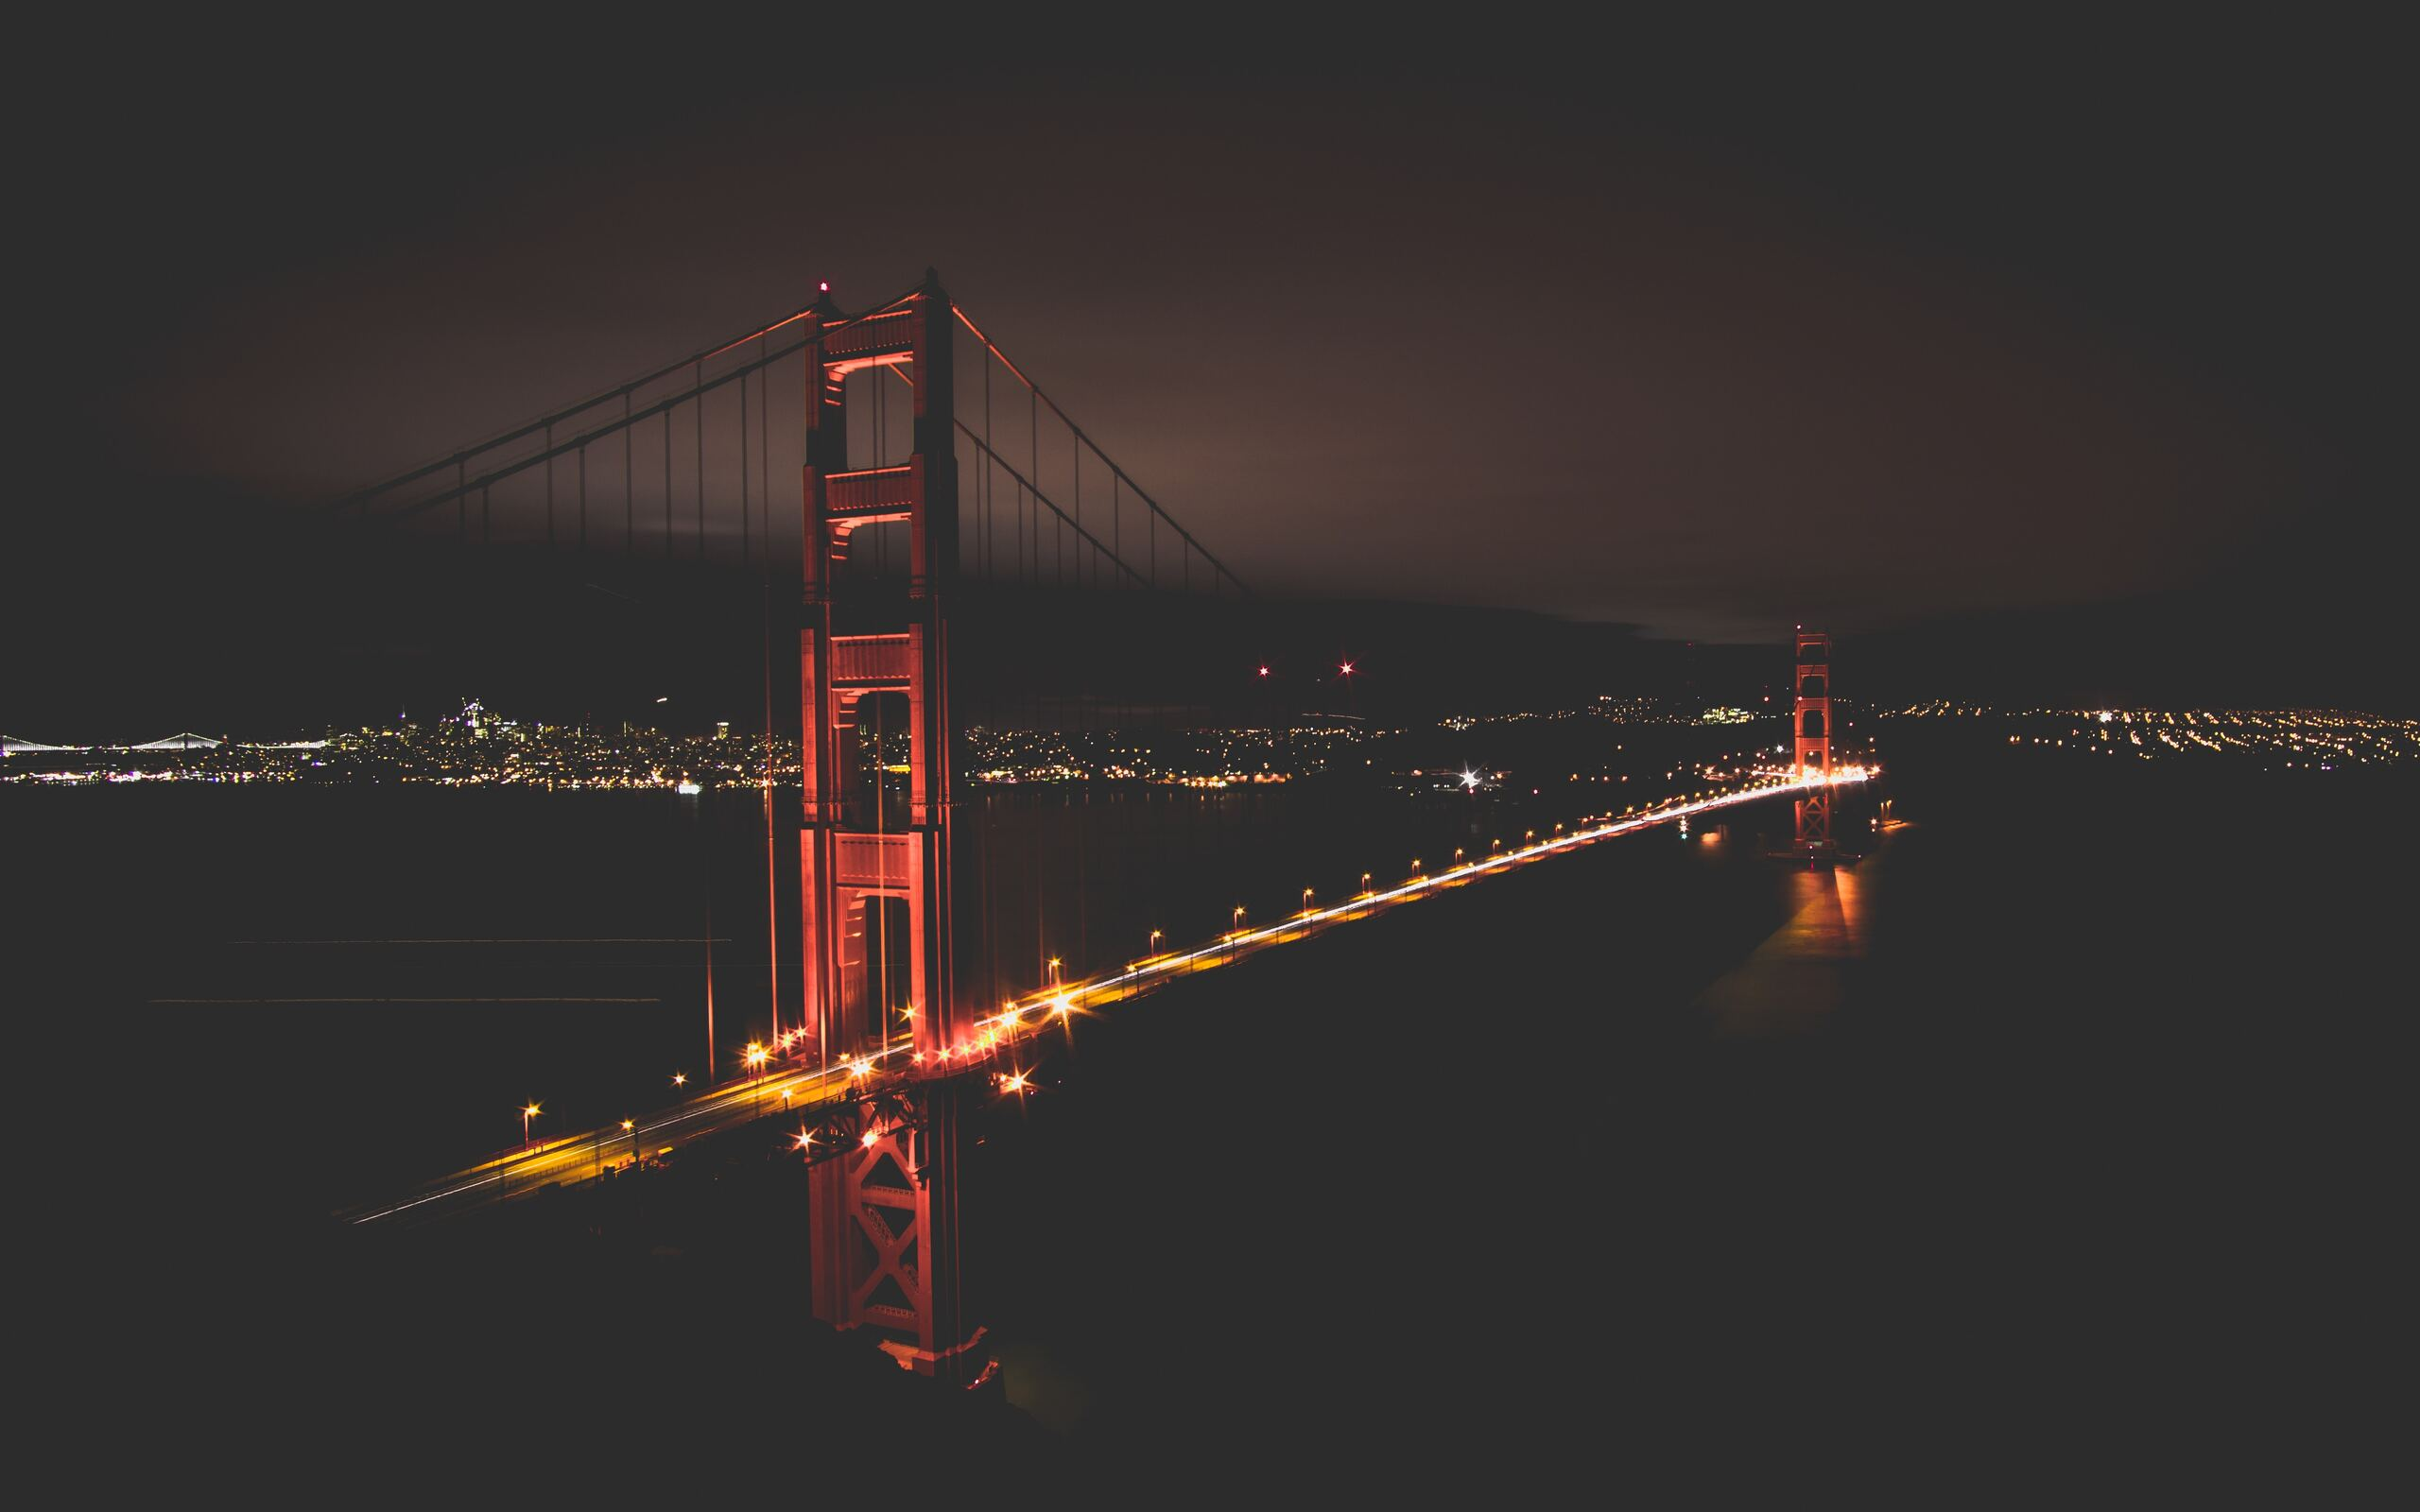 golden-gate-bridge-at-night-time-tw.jpg